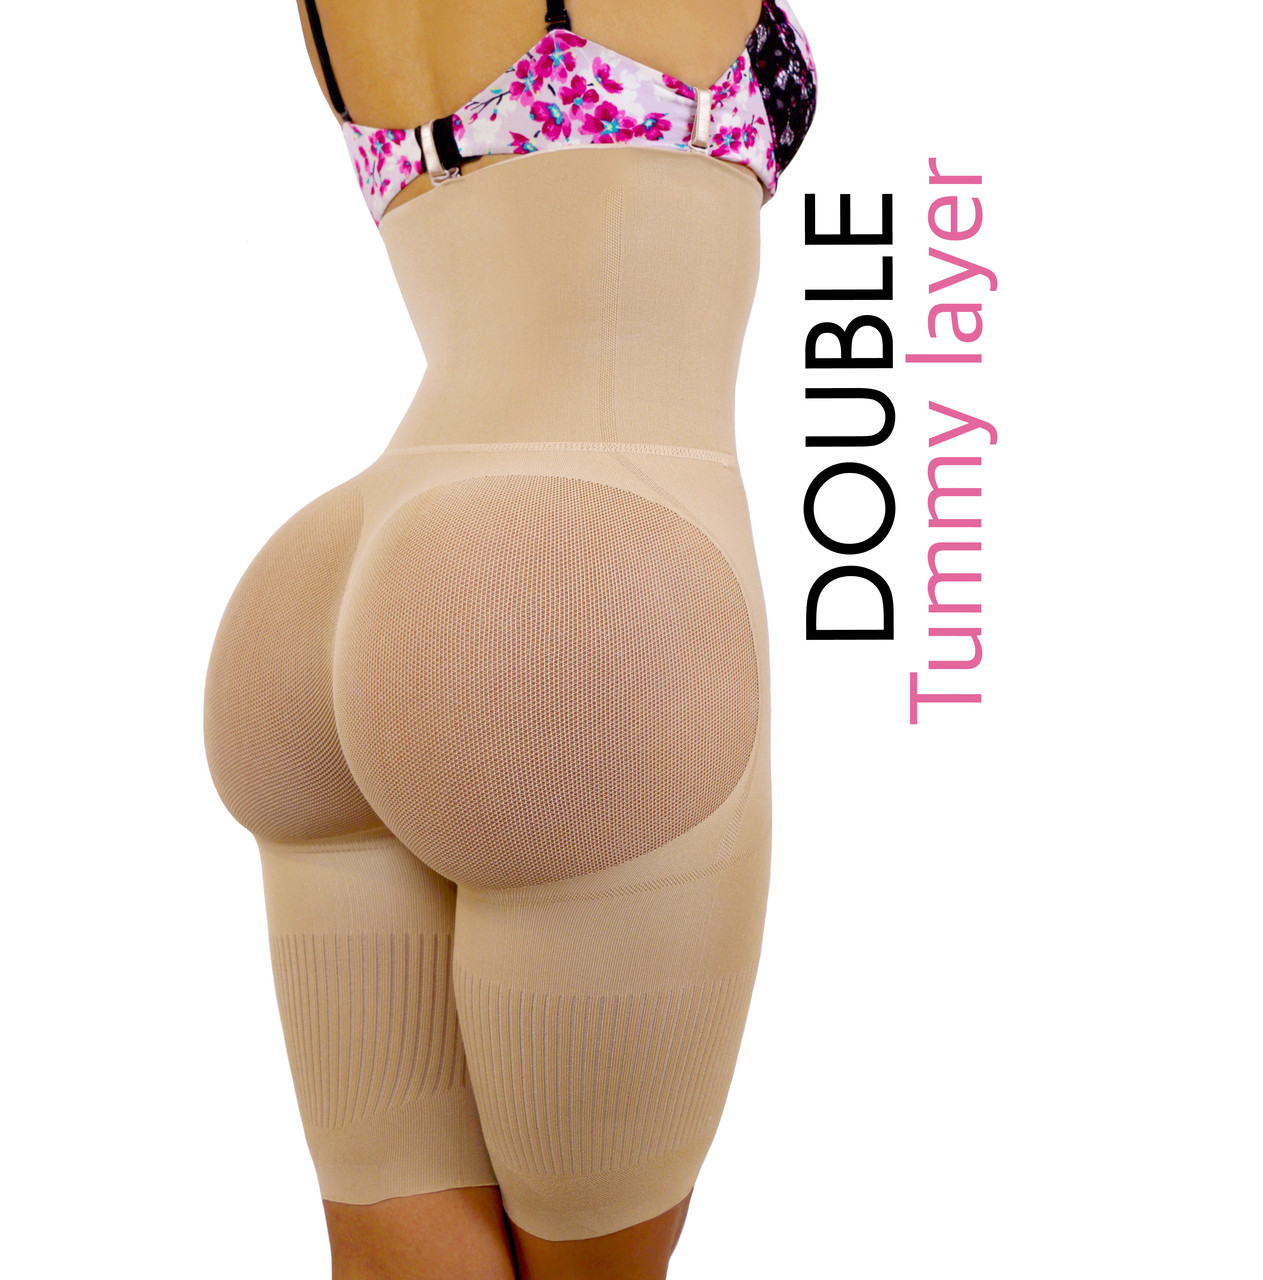 d59a37b465e Happy Butt N°7 Double Tummy Layer - YAHAIRA INC